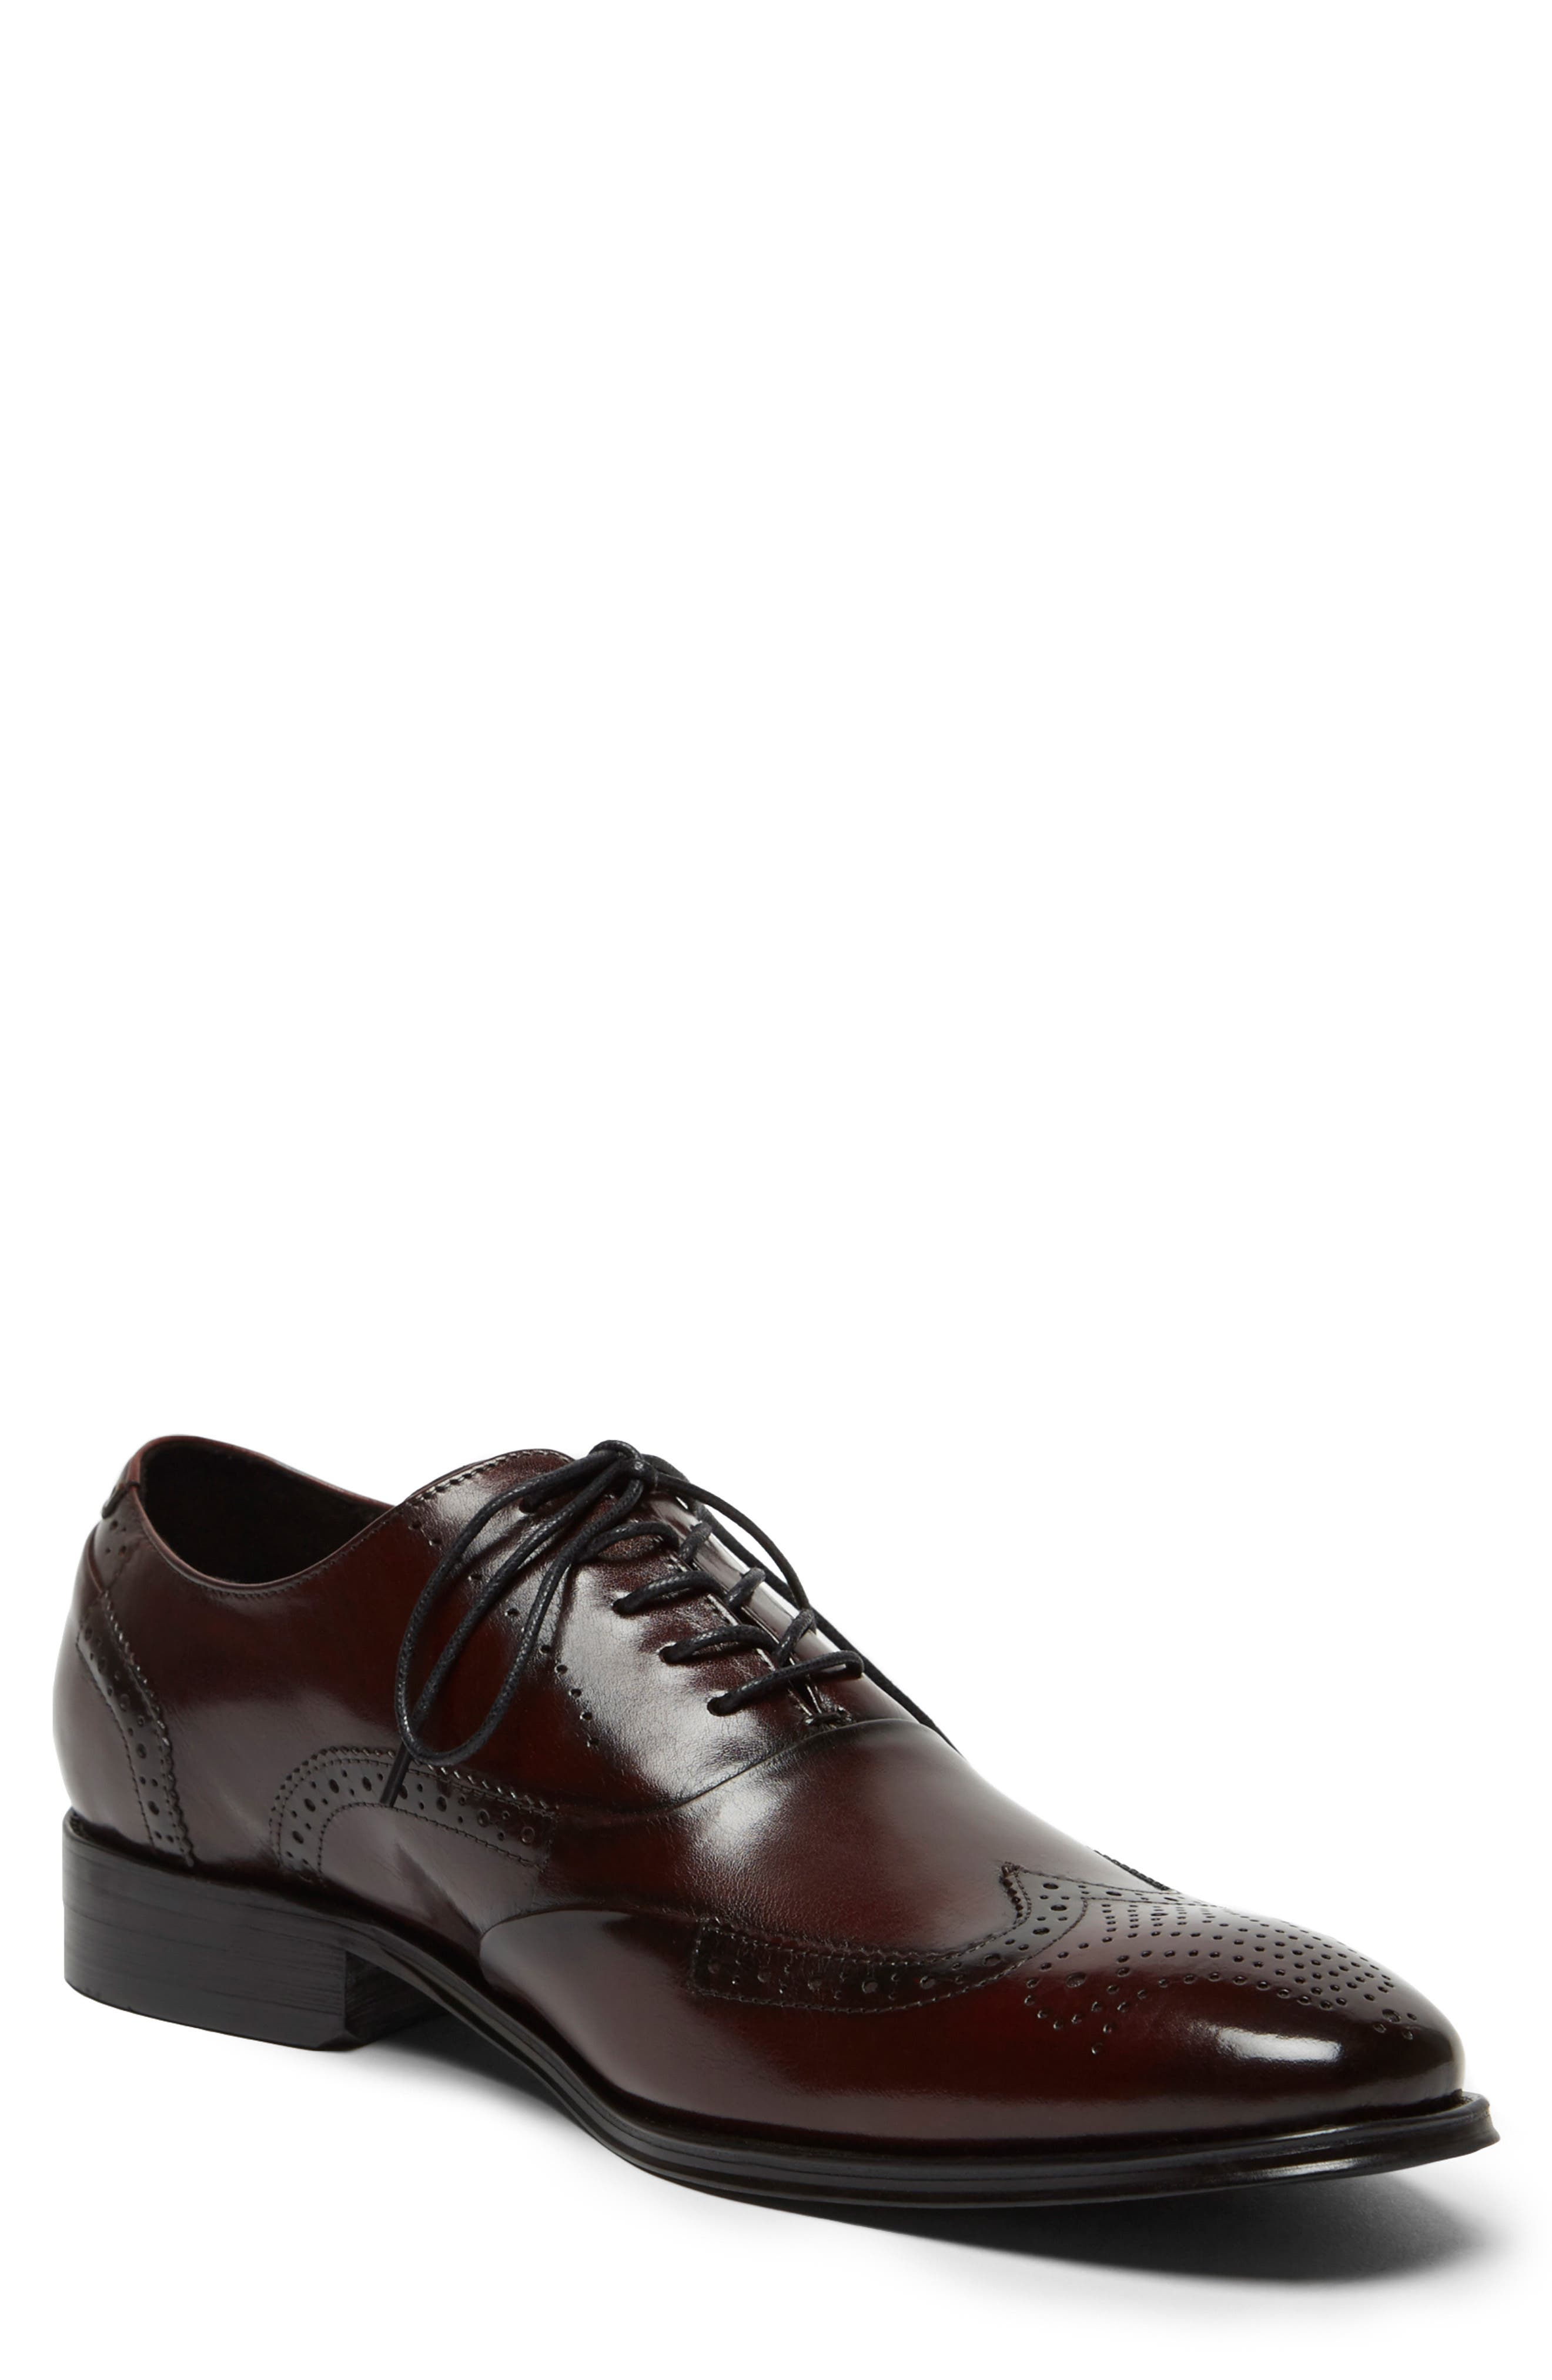 KENNETH COLE NEW YORK, Brant Wingtip, Main thumbnail 1, color, BORDEAUX LEATHER